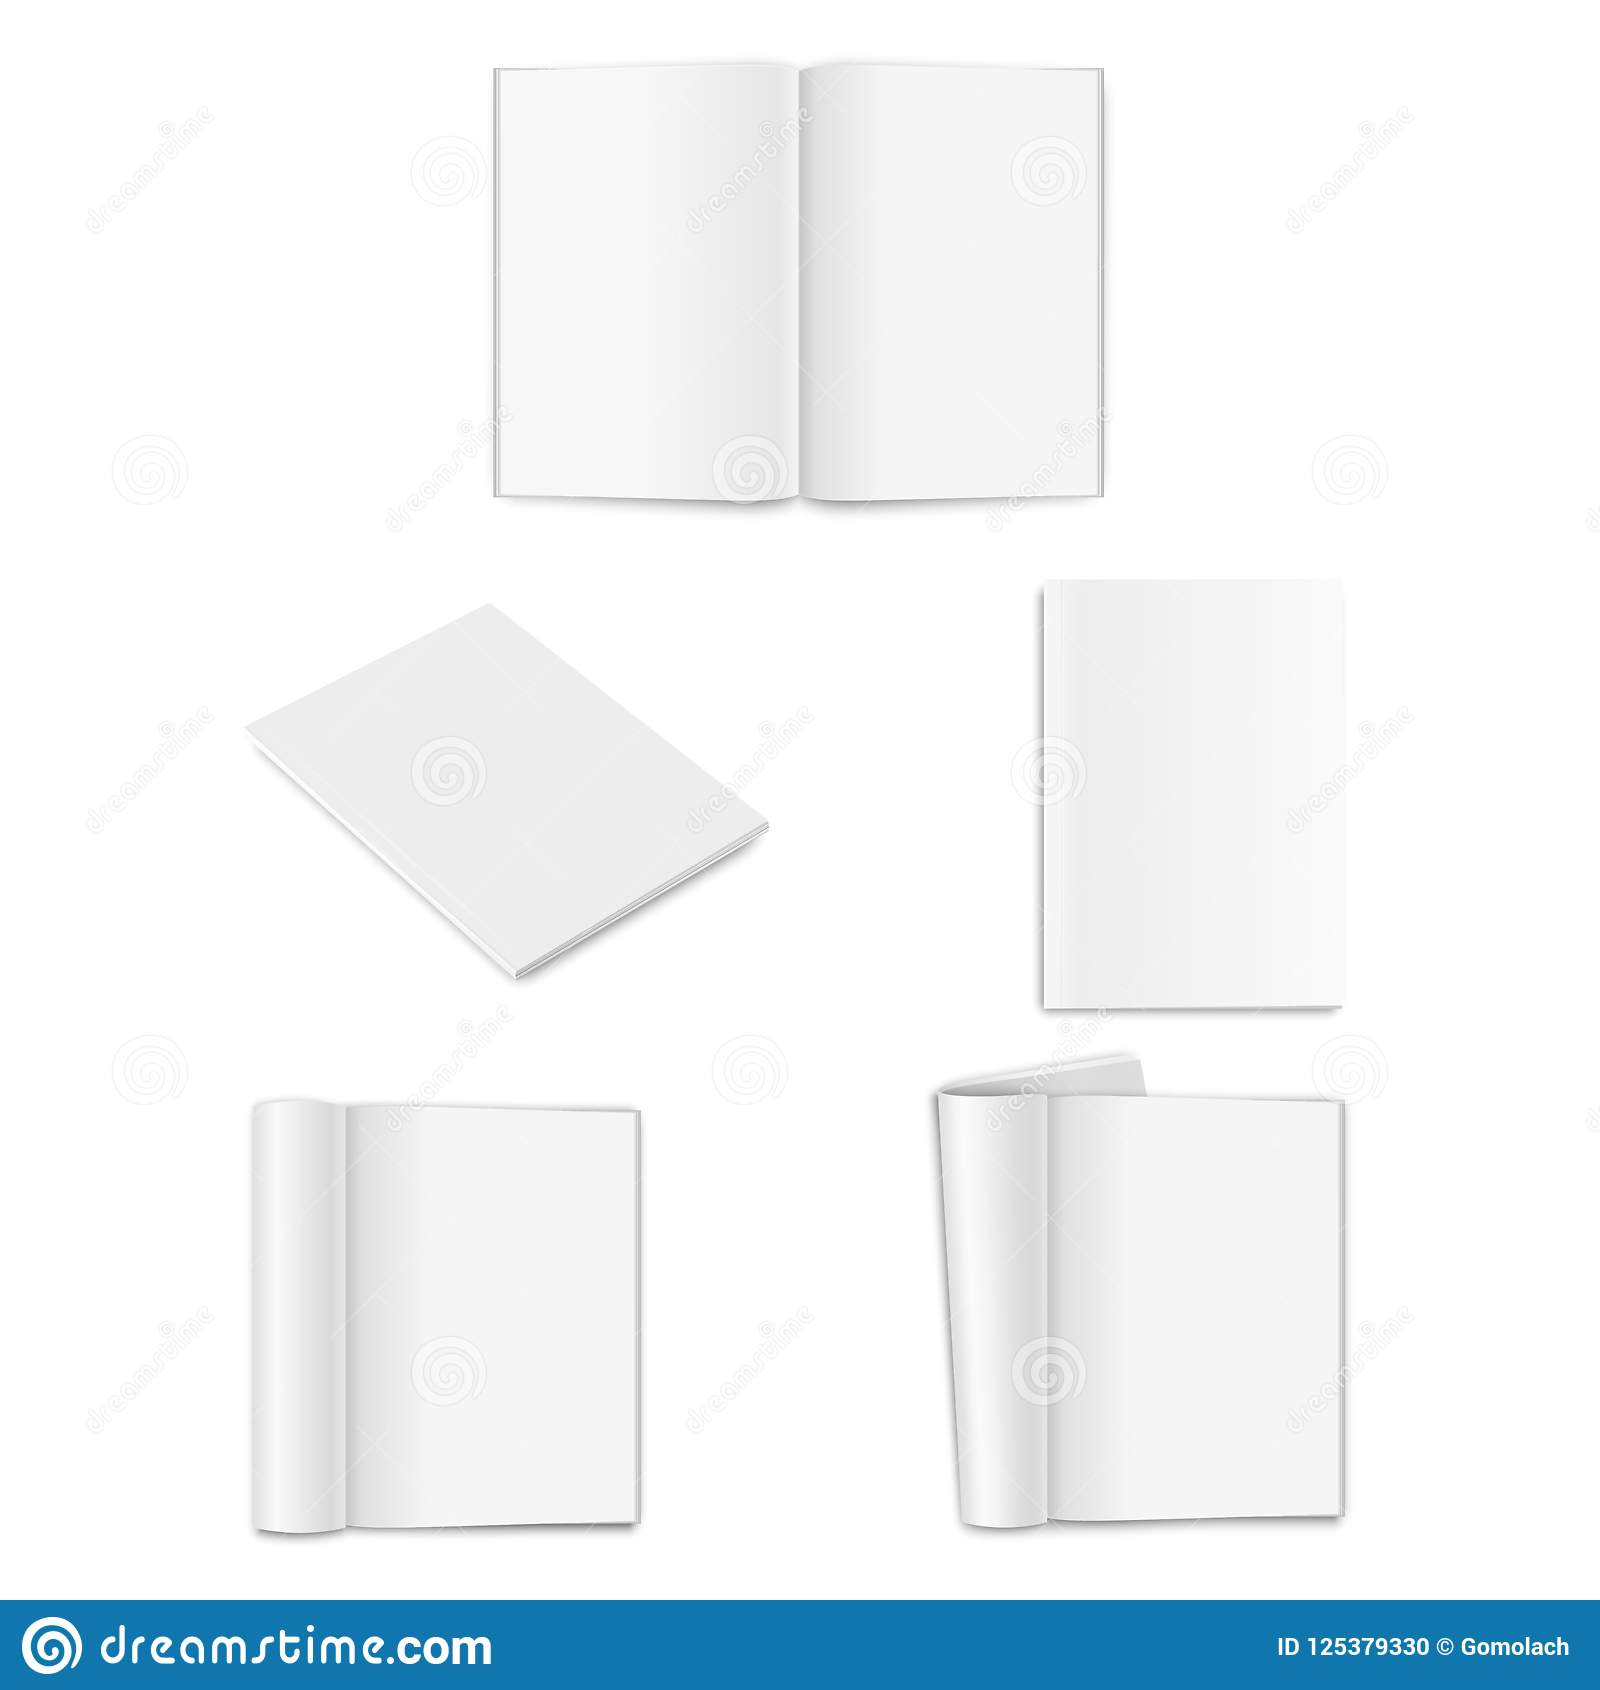 Vector realistic empty paper closed and opened A4 vertical magazine, book, catalog or brochure with rolled white paper